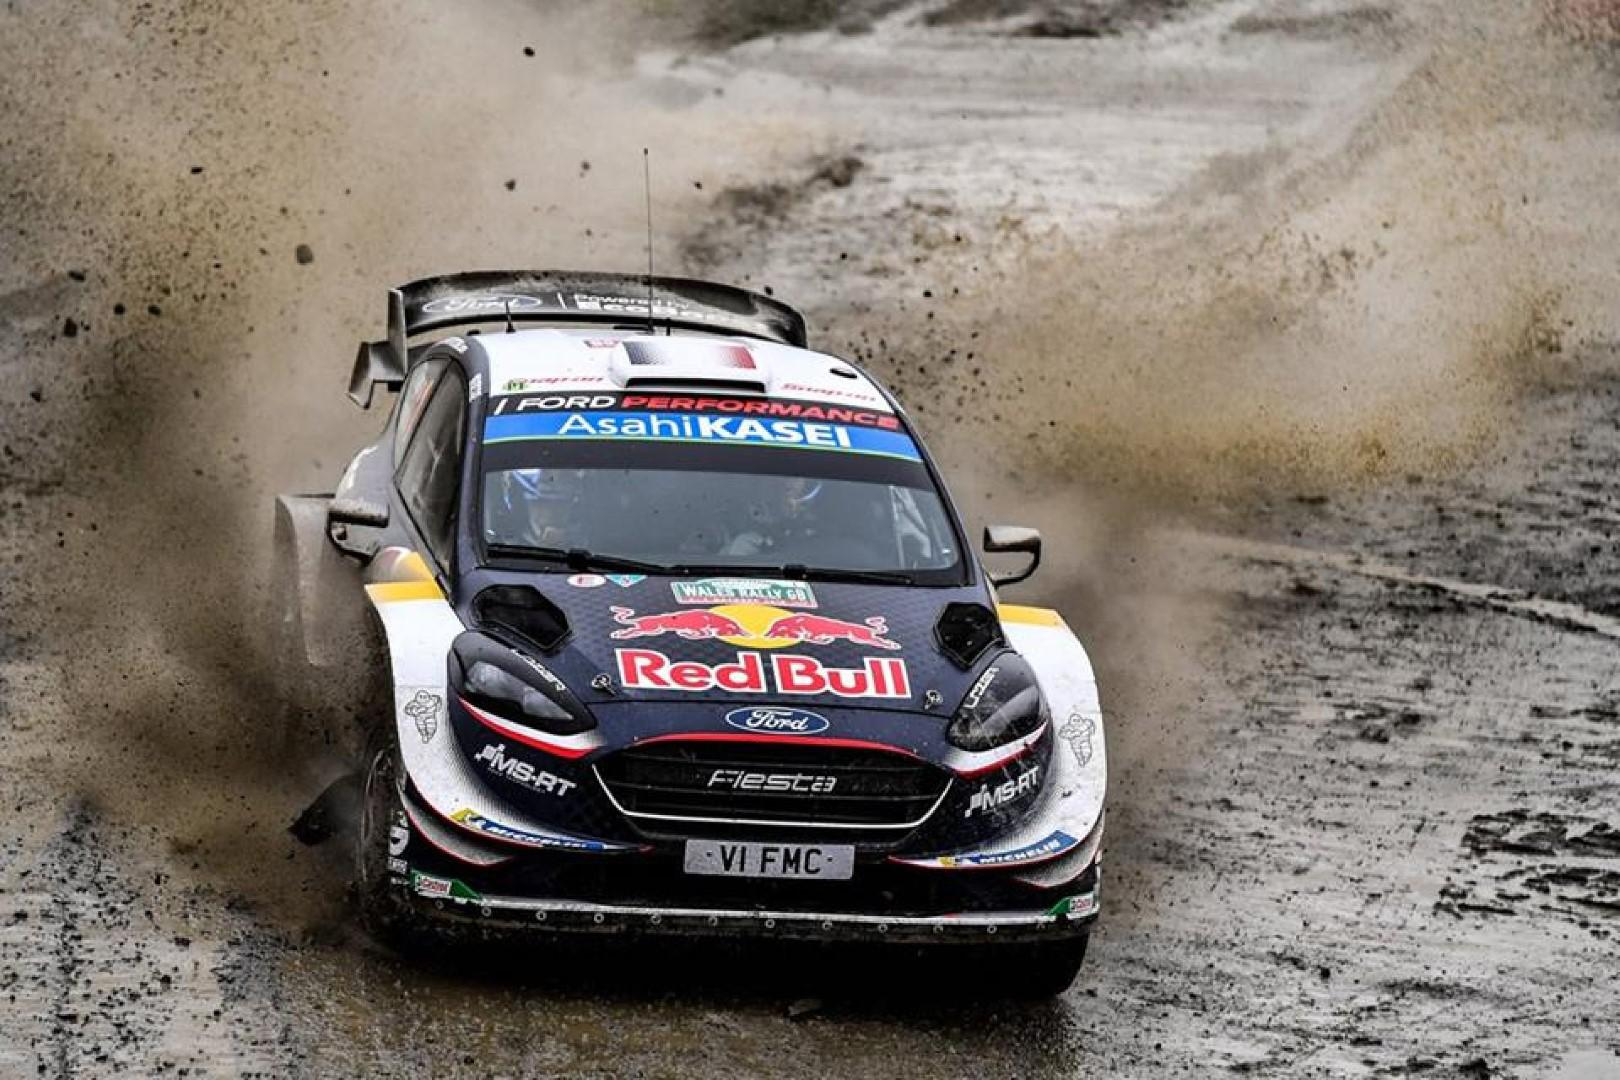 Wales rally GB 2018 : Ogier vainqueur